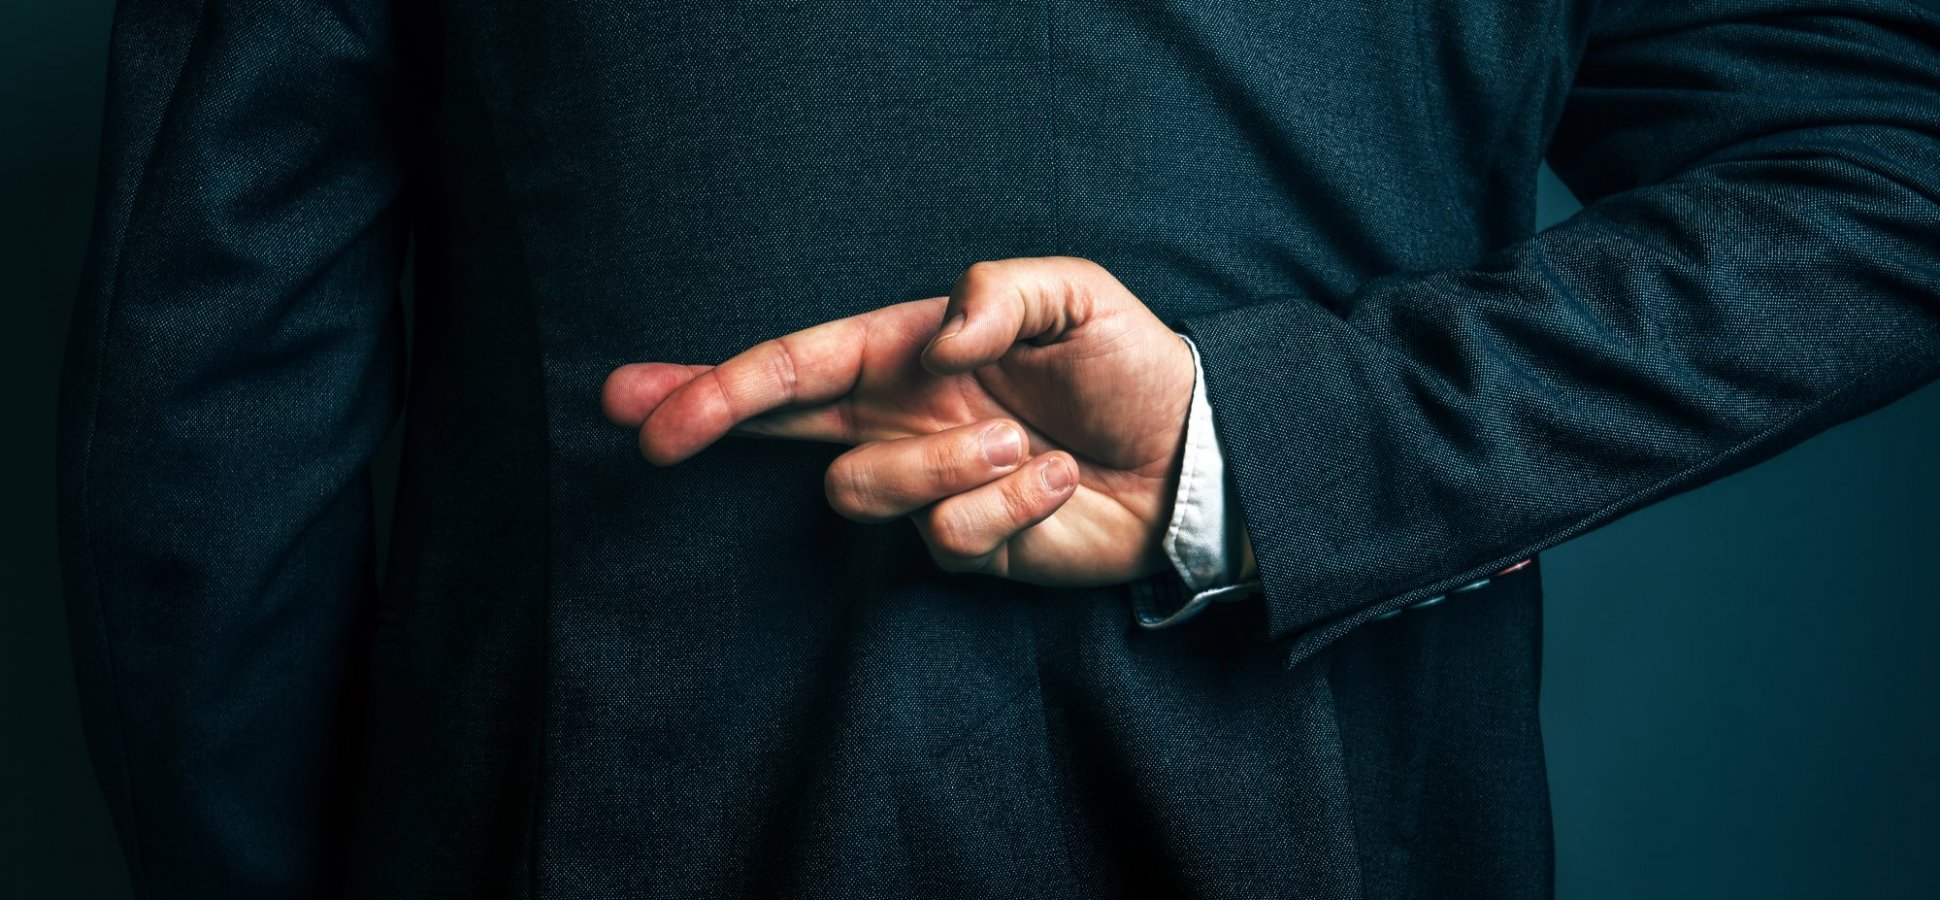 New Study Says If You Hire Salespeople, You May be Prone to Hiring Liars